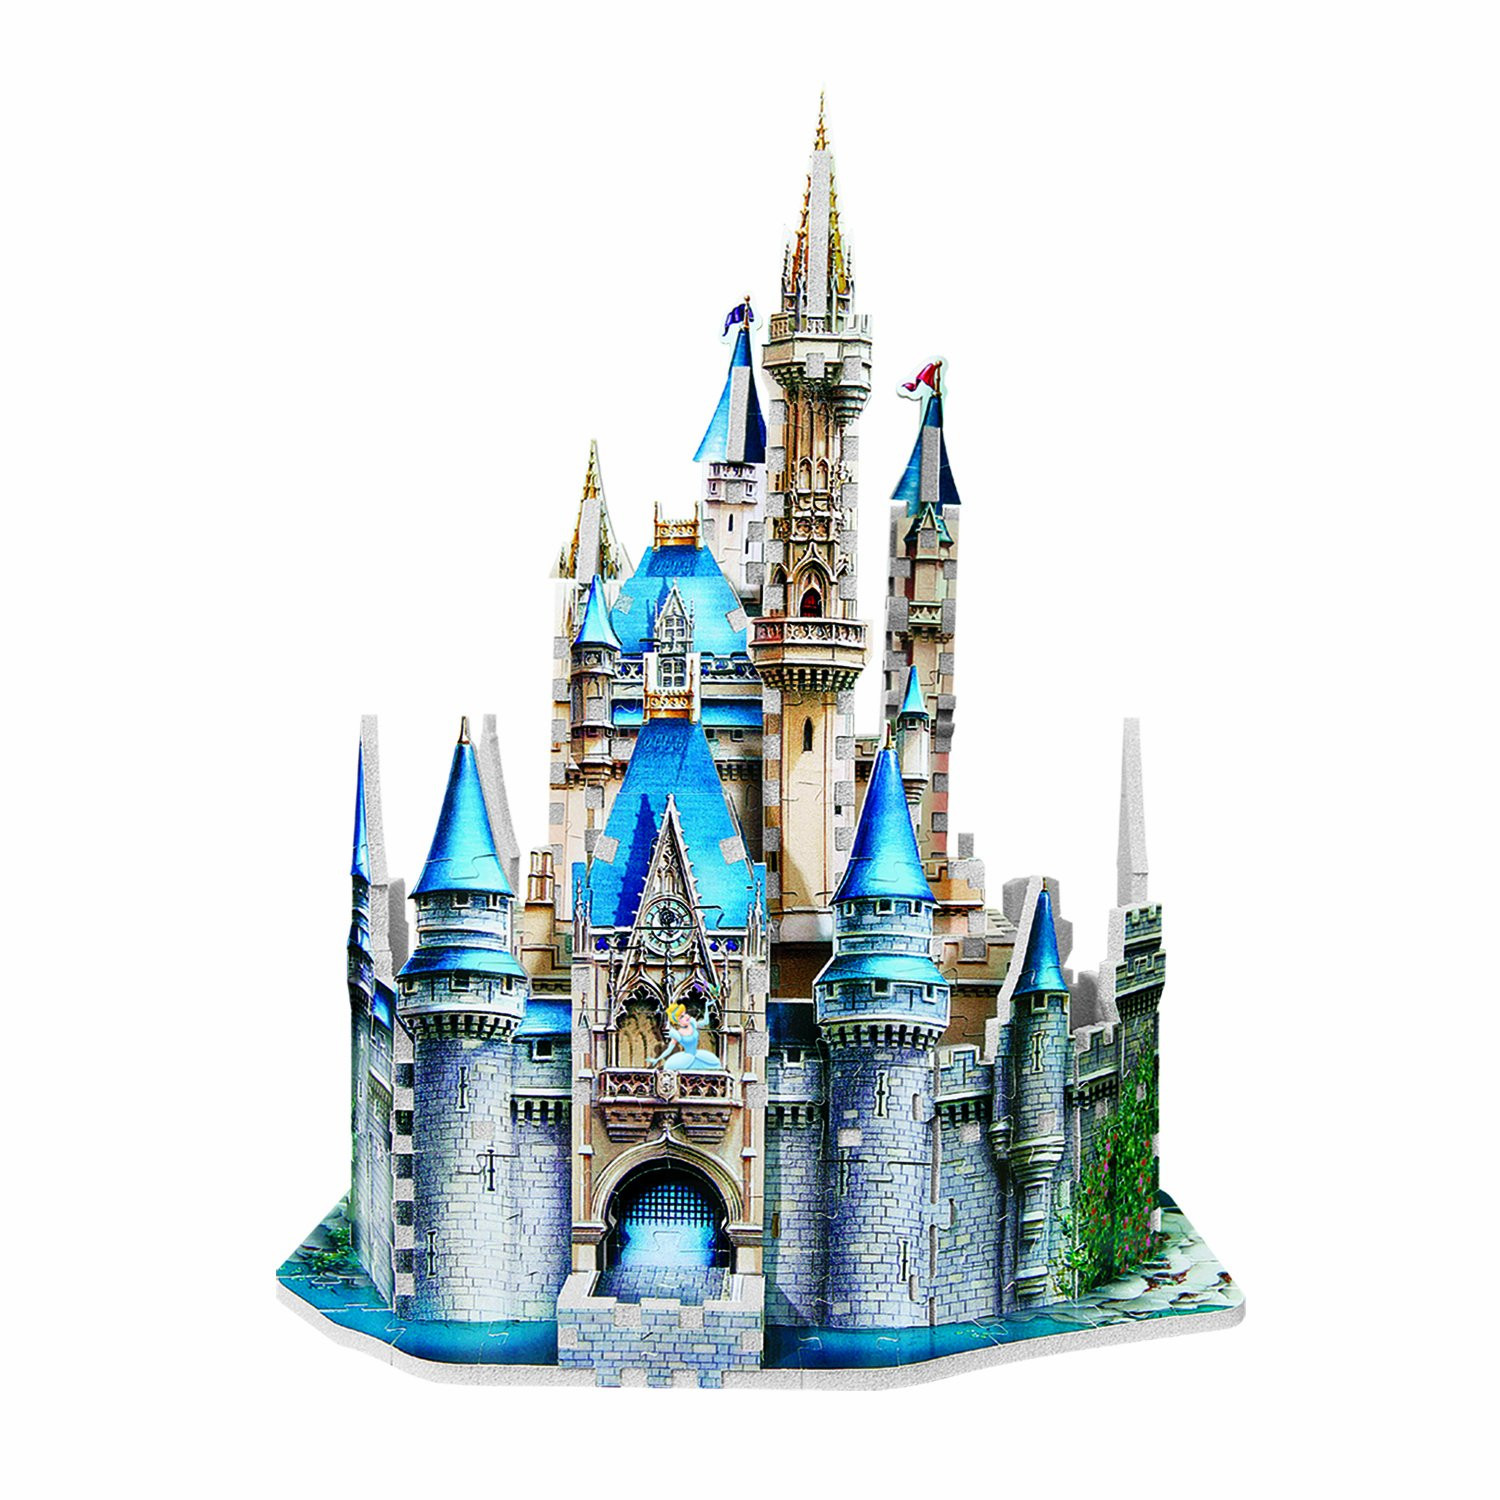 1500x1500 Sleeping Beauty Castle Cinderella Disney Princess Clip Art Tearing